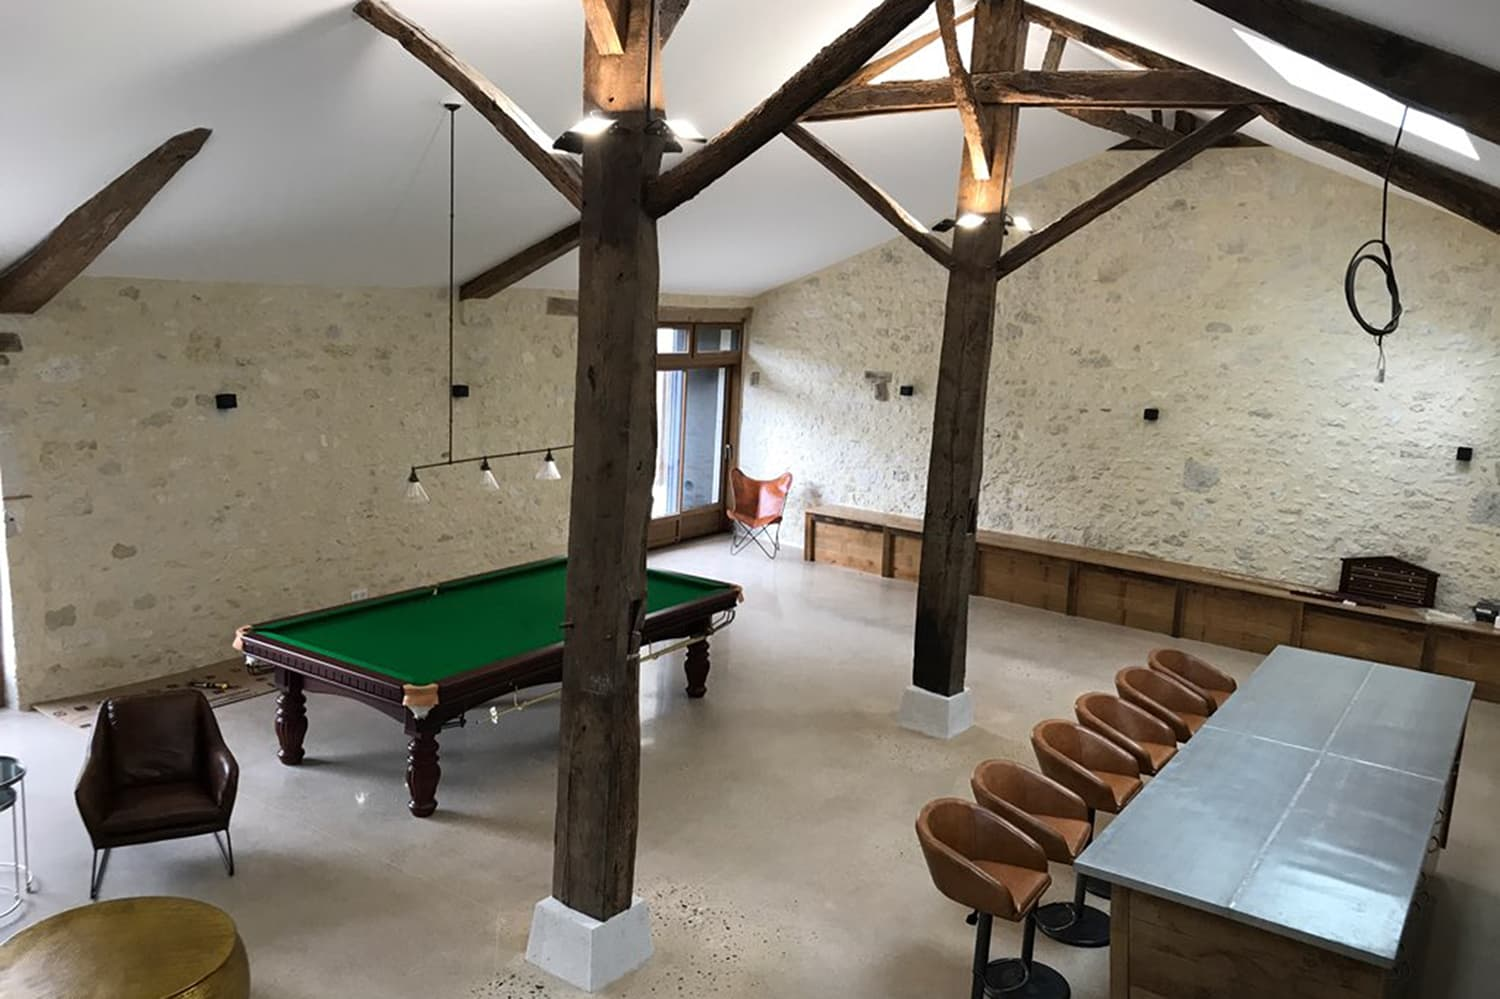 Barn conversion with snooker table, bar and home cinema